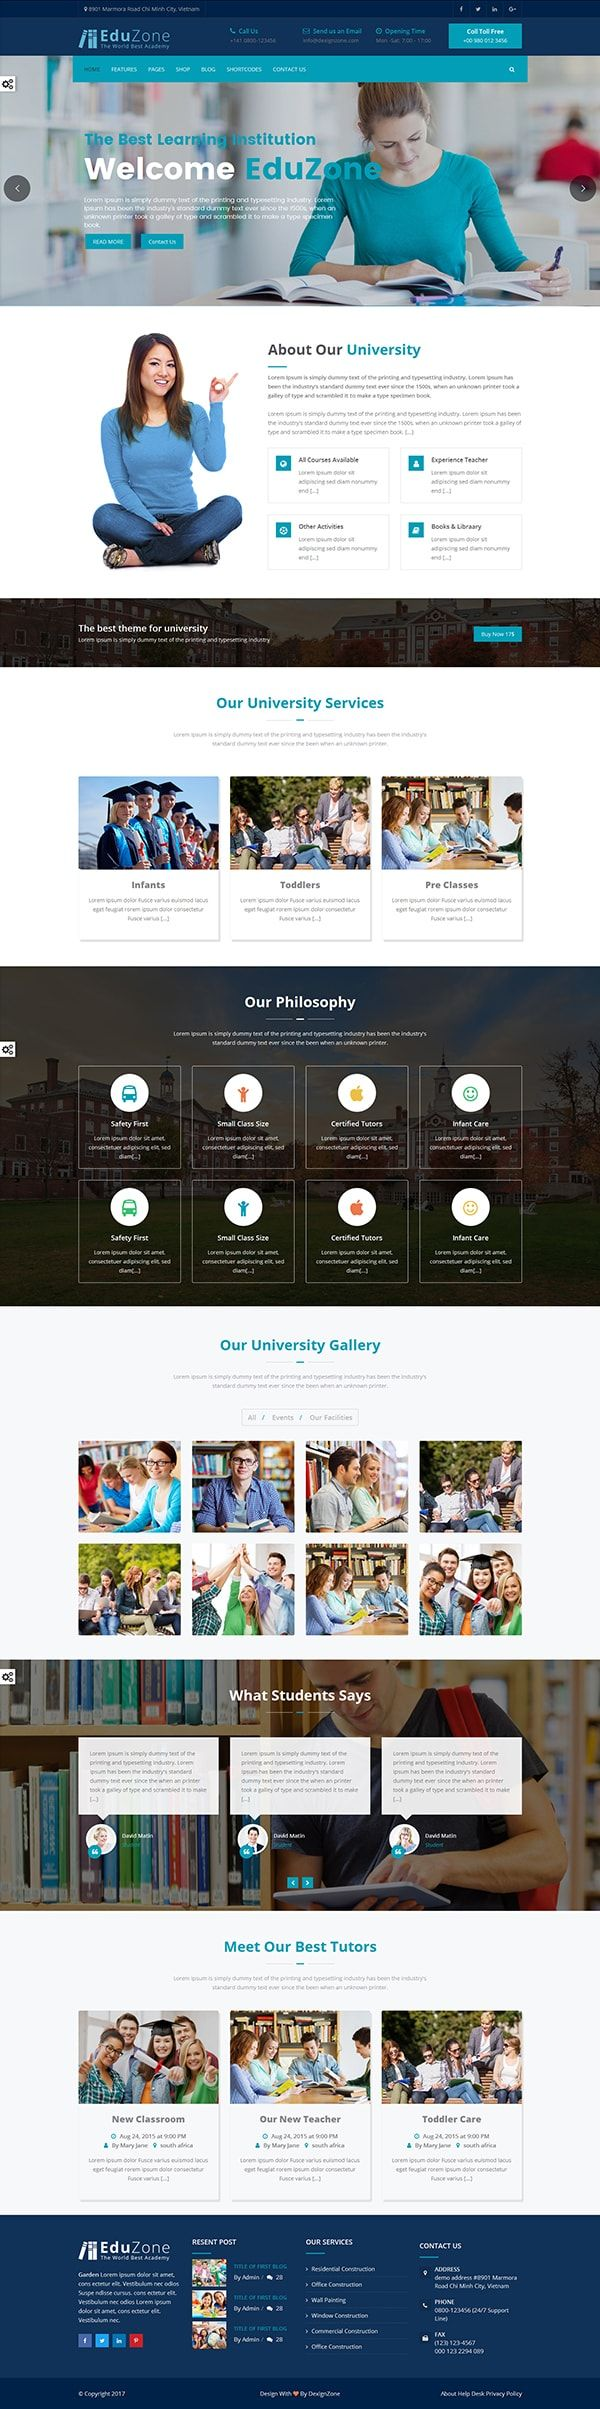 Hello, Guy's our best Education website template is a clean and mobile responsive HTML template, very easy to customize according to business needs.   The template is loaded with tons of shortcodes, 5+ headers, 8+Types Testimonials, 8+Color Theme Styles, Parallax effect much more.